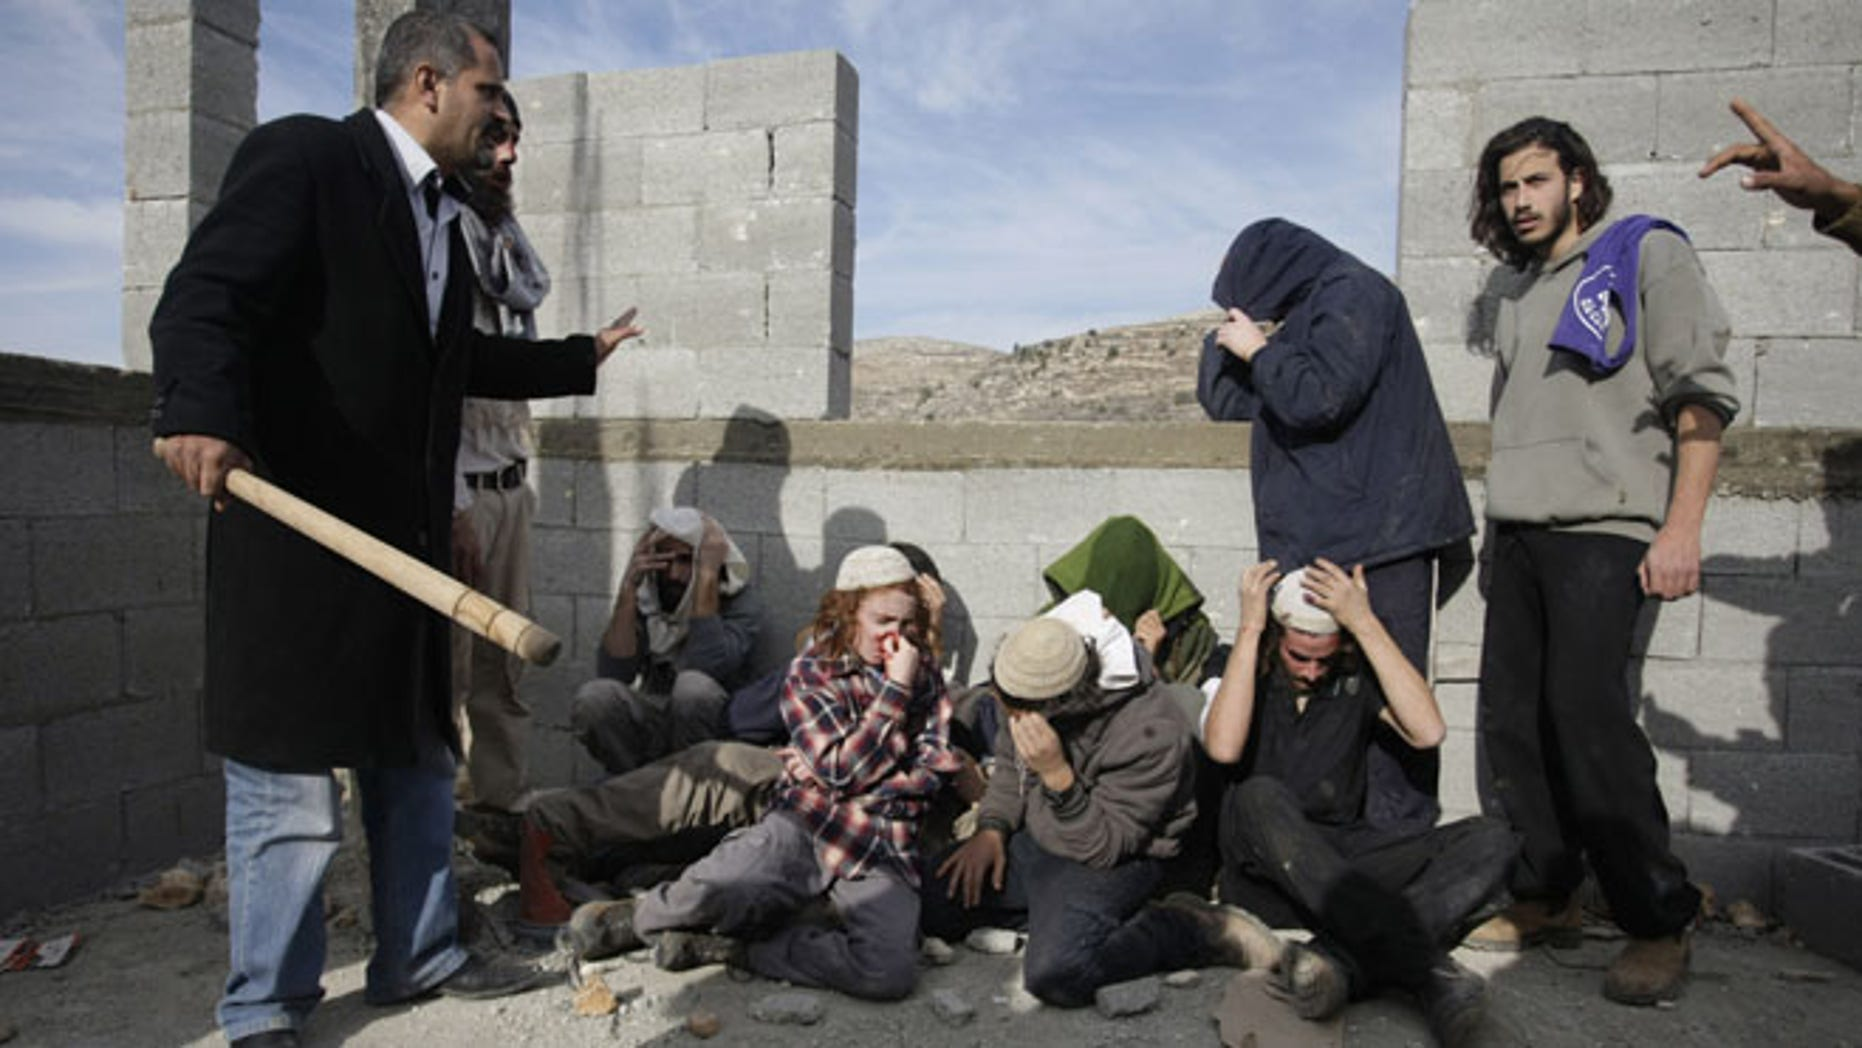 Tuesday, Jan. 7, 2014, Injured Israeli settlers are detained by Palestinian villagers in a building under construction near the West Bank village of Qusra, southeast of Nablus.